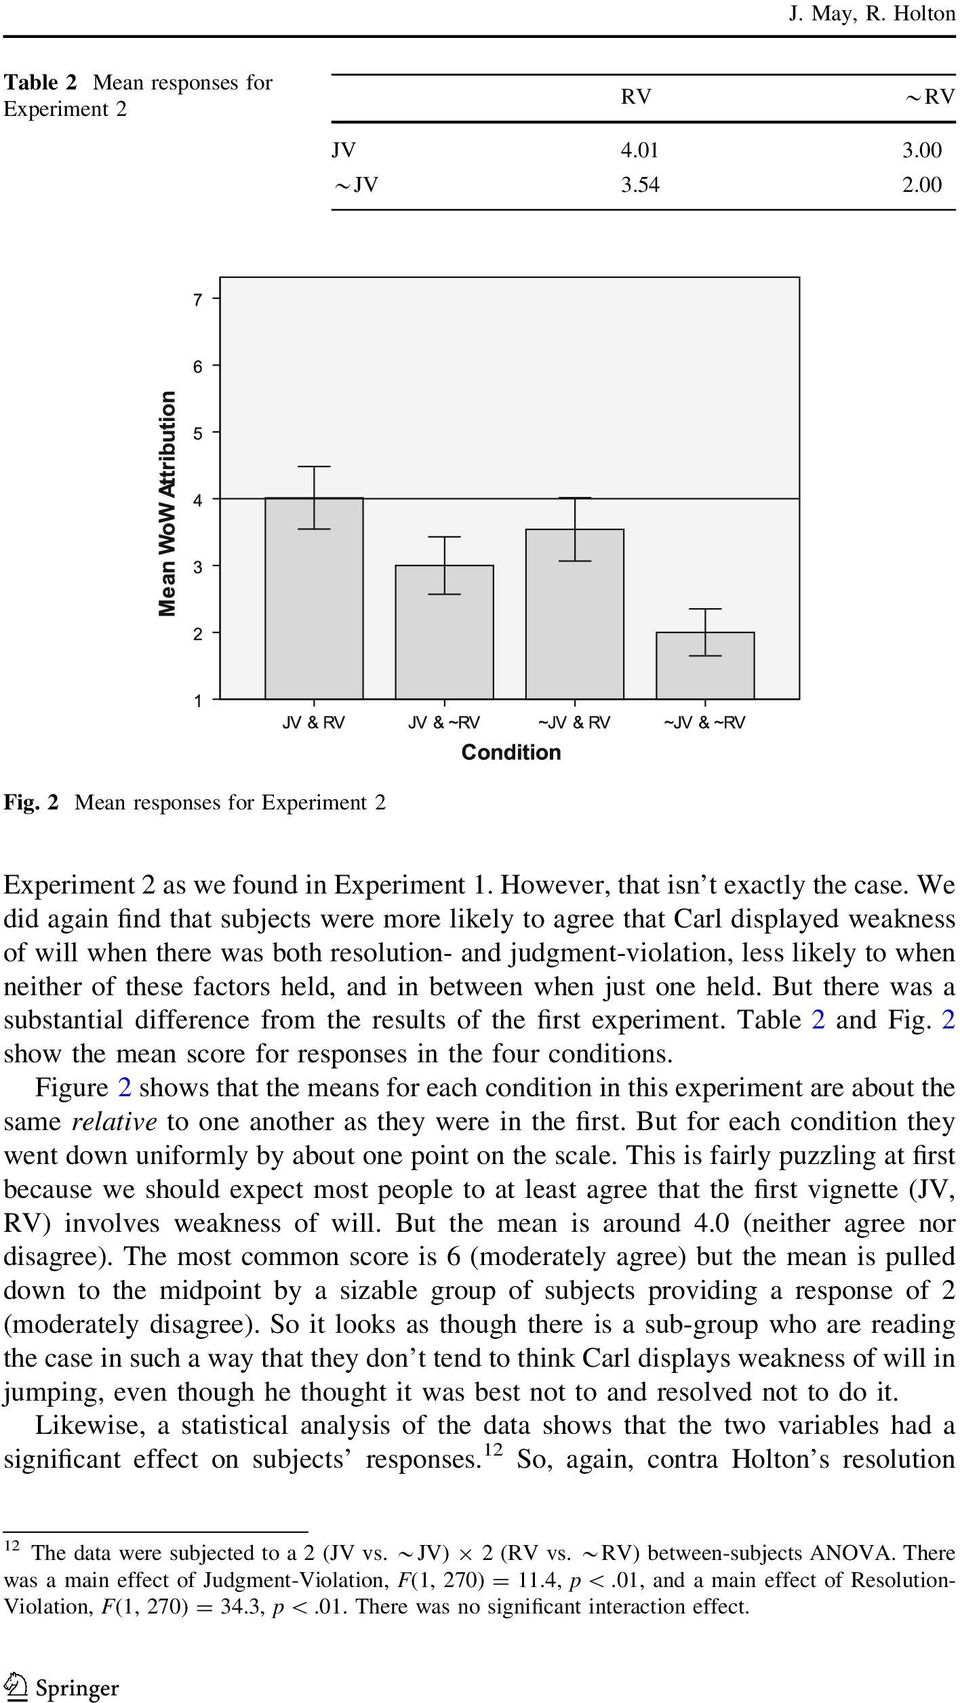 We did again find that subjects were more likely to agree that Carl displayed weakness of will when there was both resolution- and judgment-violation, less likely to when neither of these factors